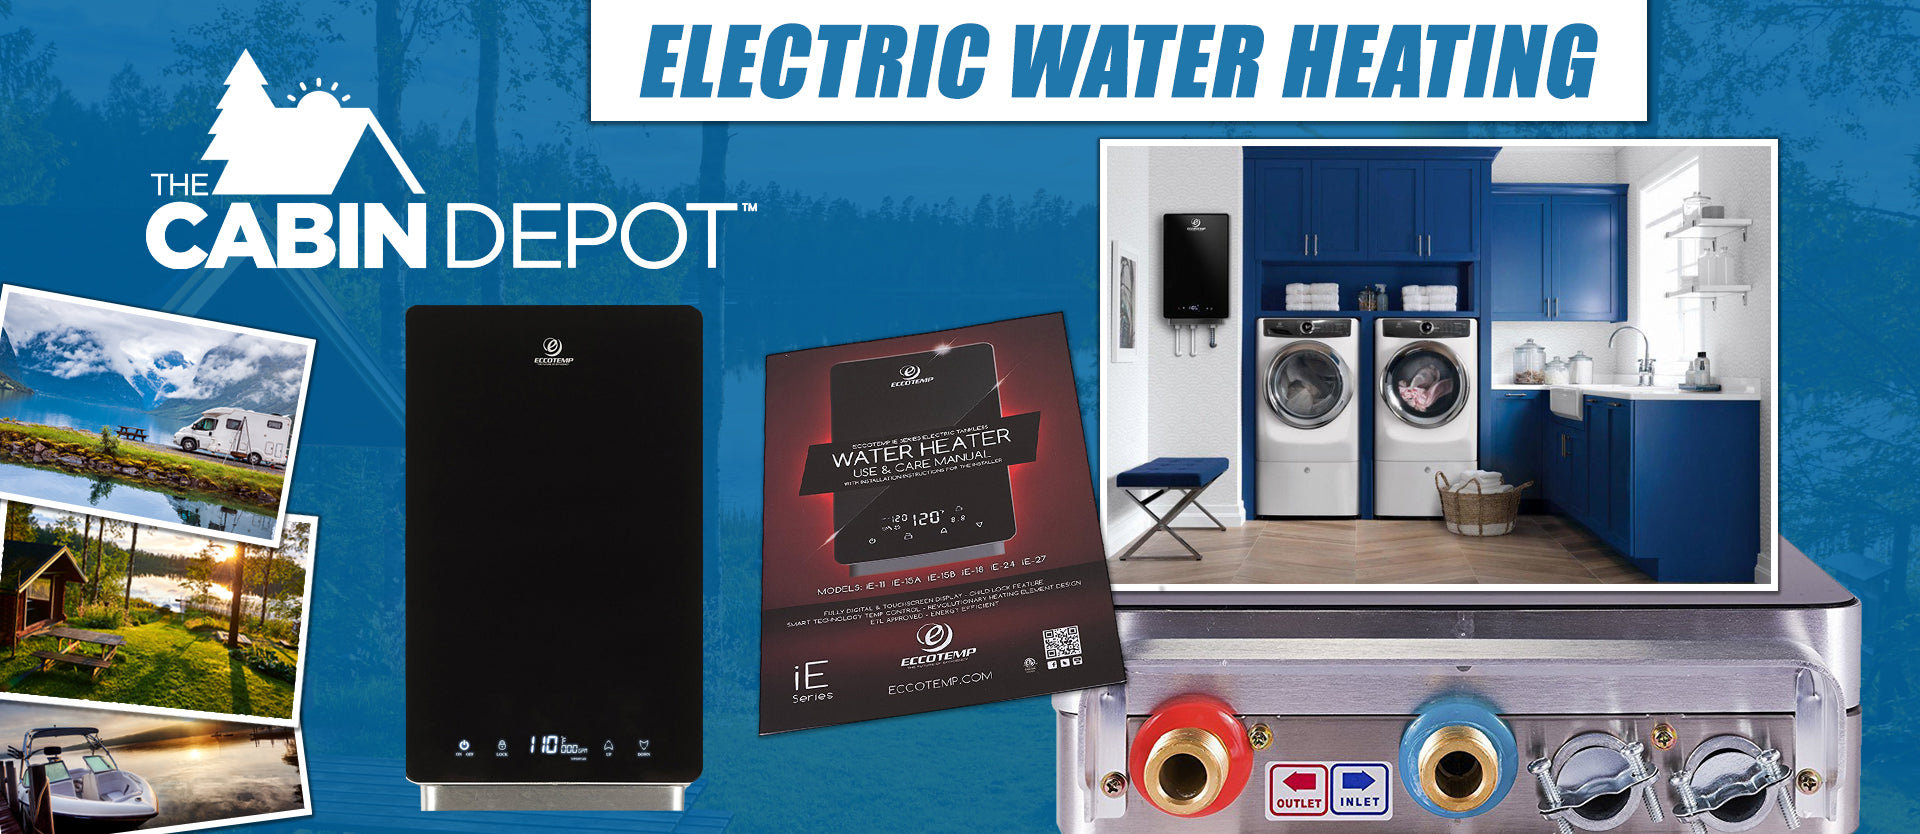 Electric Water Heating The Cabin Depot ™ Canada